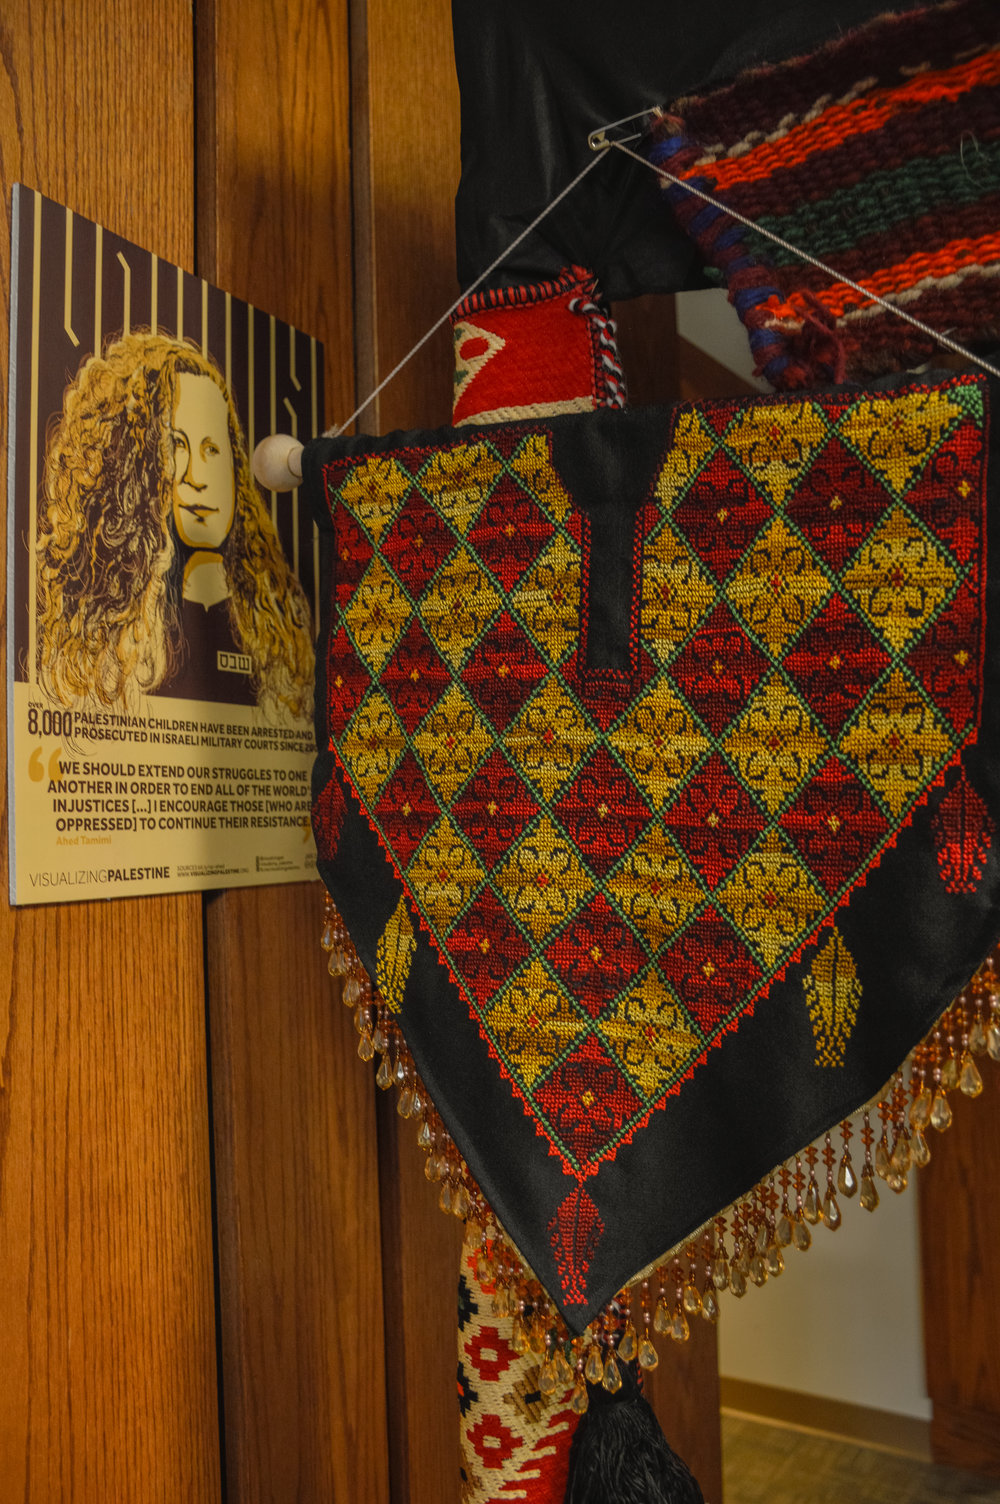 Artifacts on display at Broken Film Festival. Custom textiles/colors and more facts about the occupation in Israel/Palestine